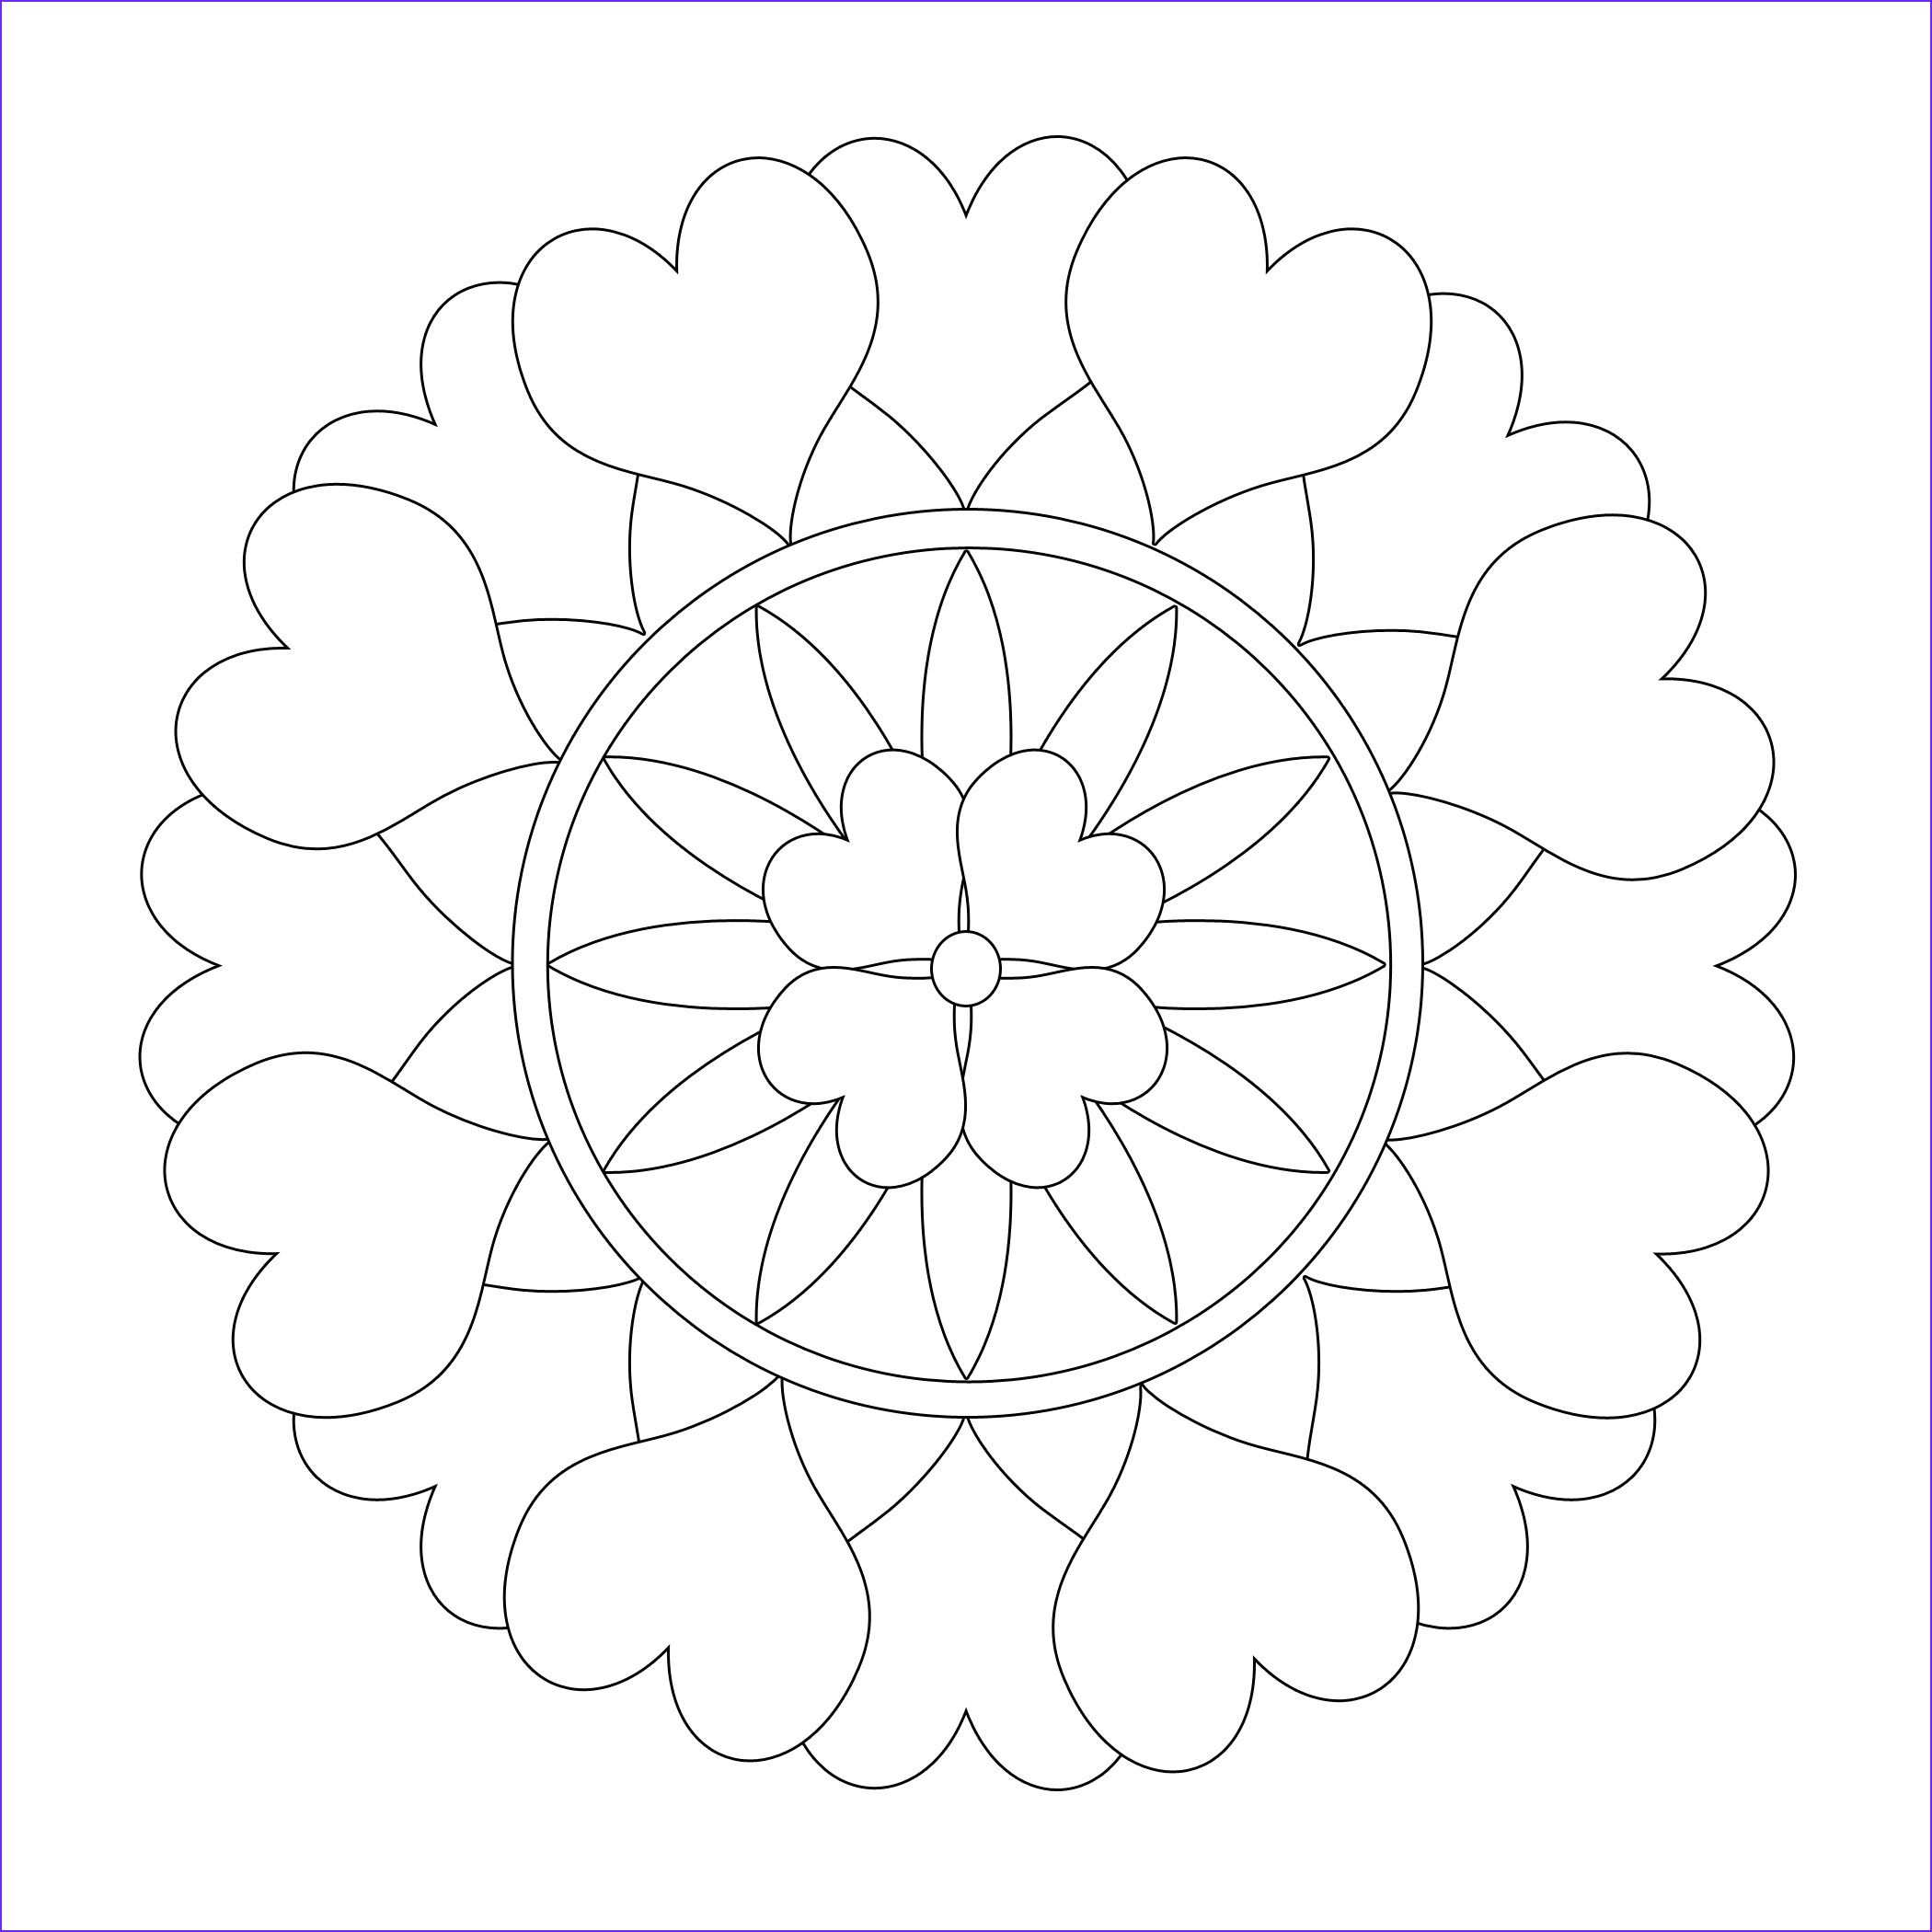 Free Printable Mandalas Coloring Pages Adults Luxury Collection Free Printable Mandala Coloring Pages for Adults Best